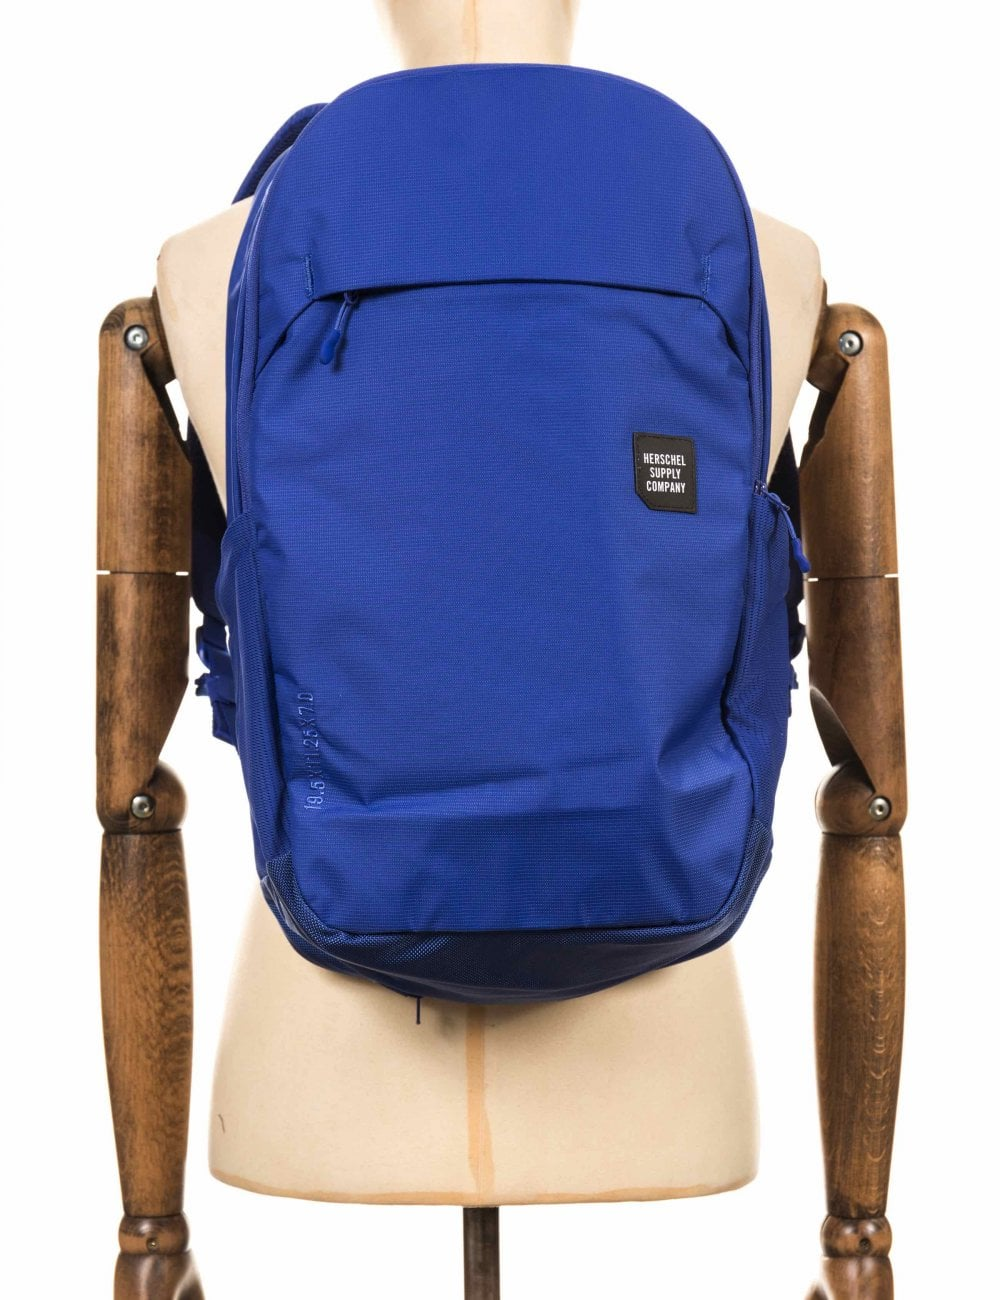 ac76580e3e0 Herschel Supply Co Mammoth Trail Backpack Large 23L - Deep Ultramarine